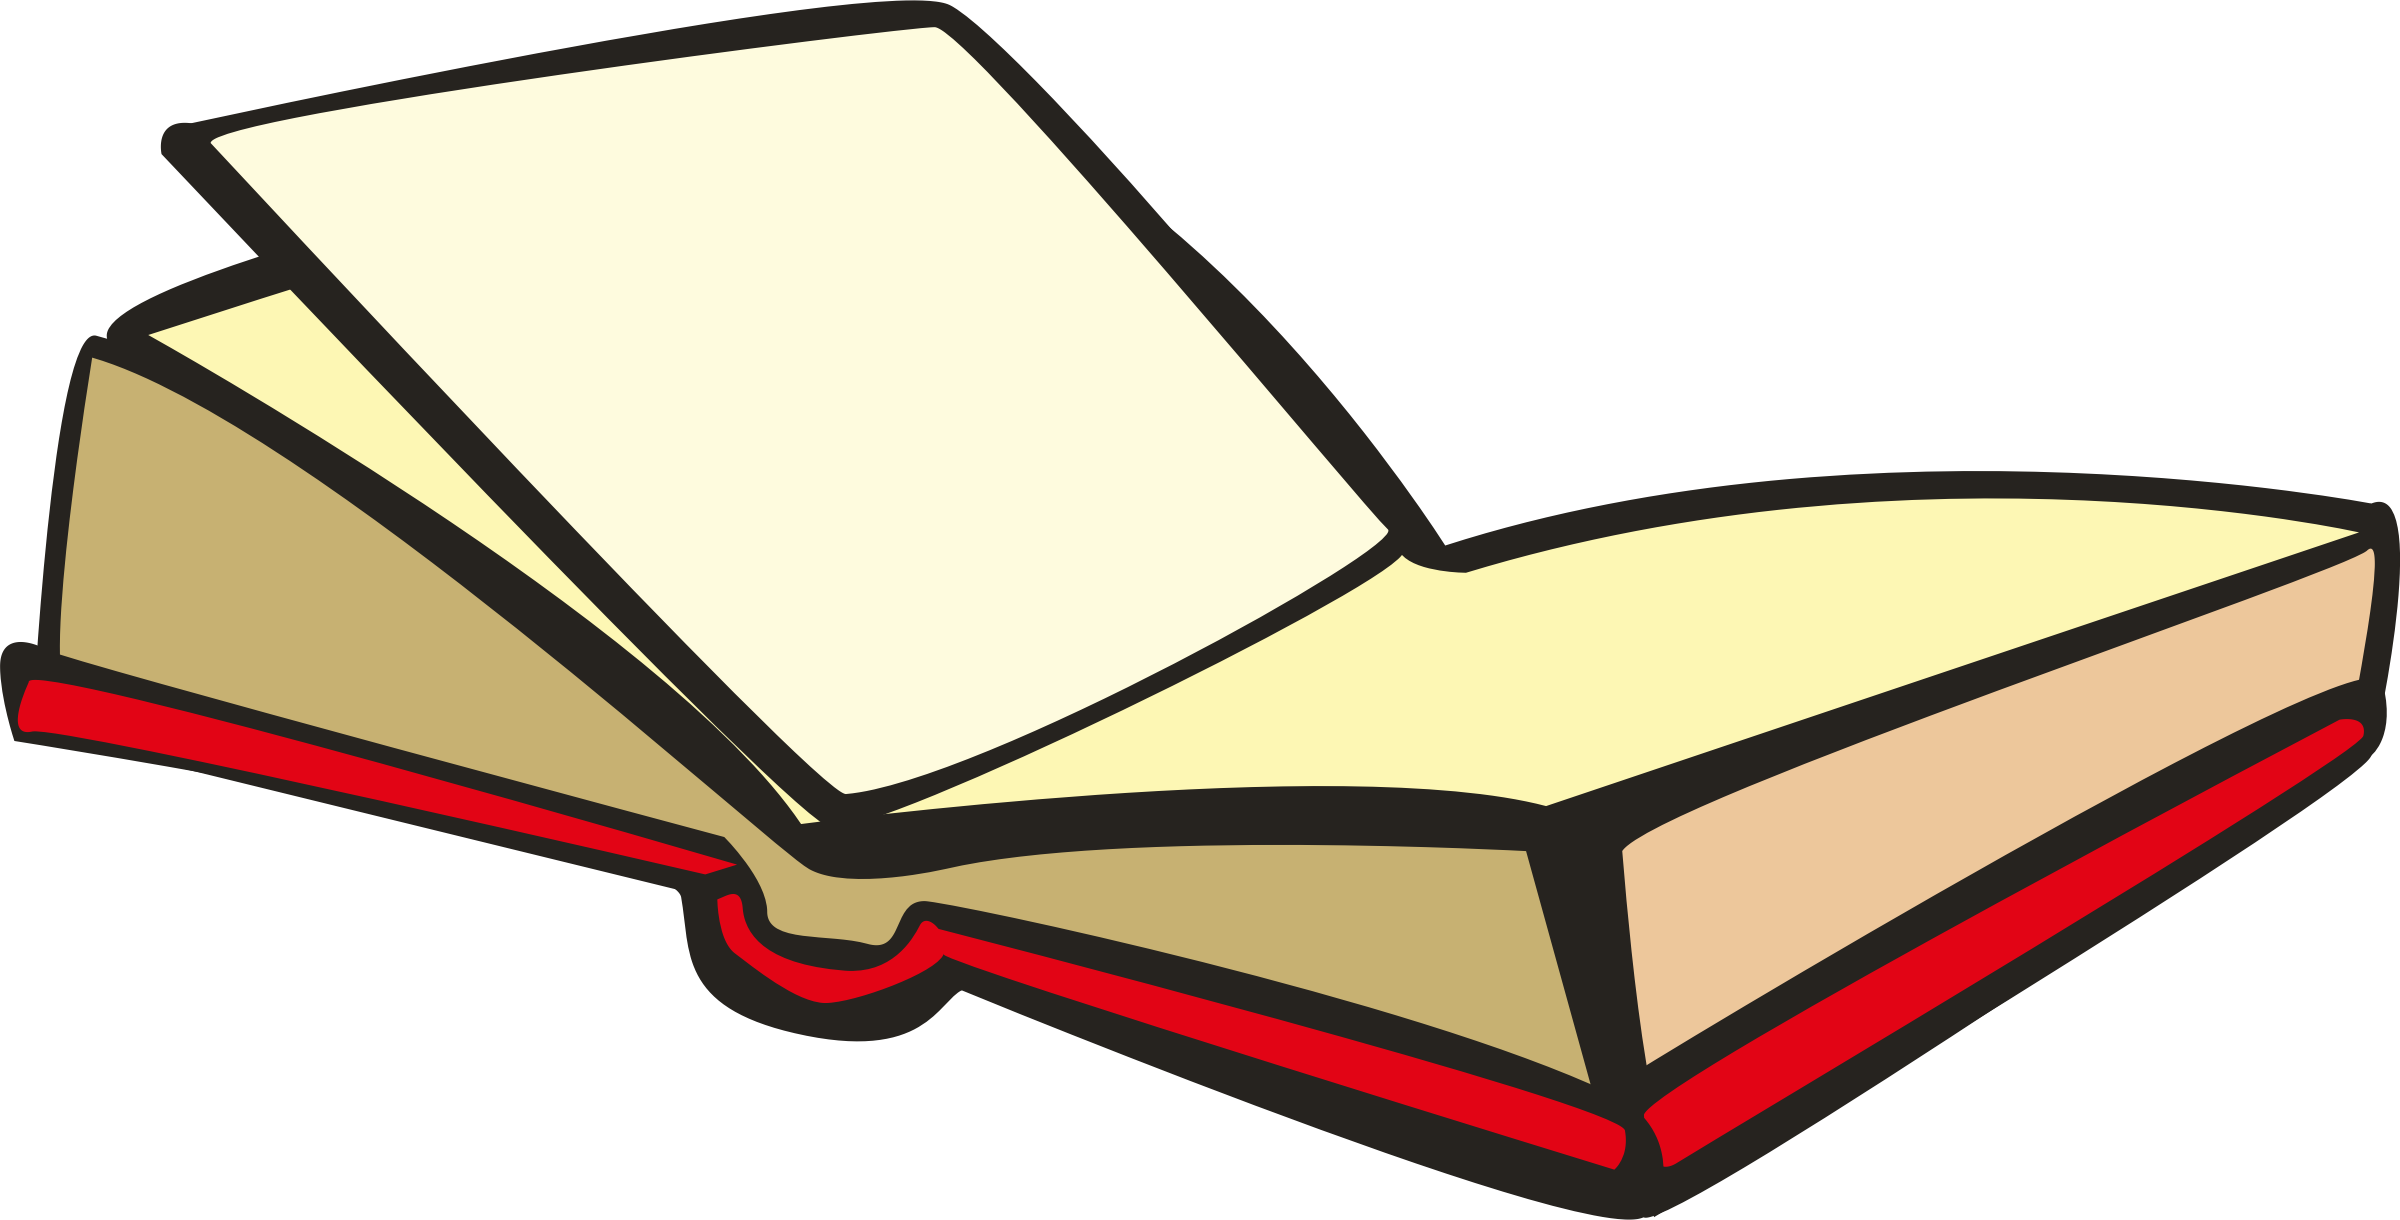 Textbook clipart big. Open book image png